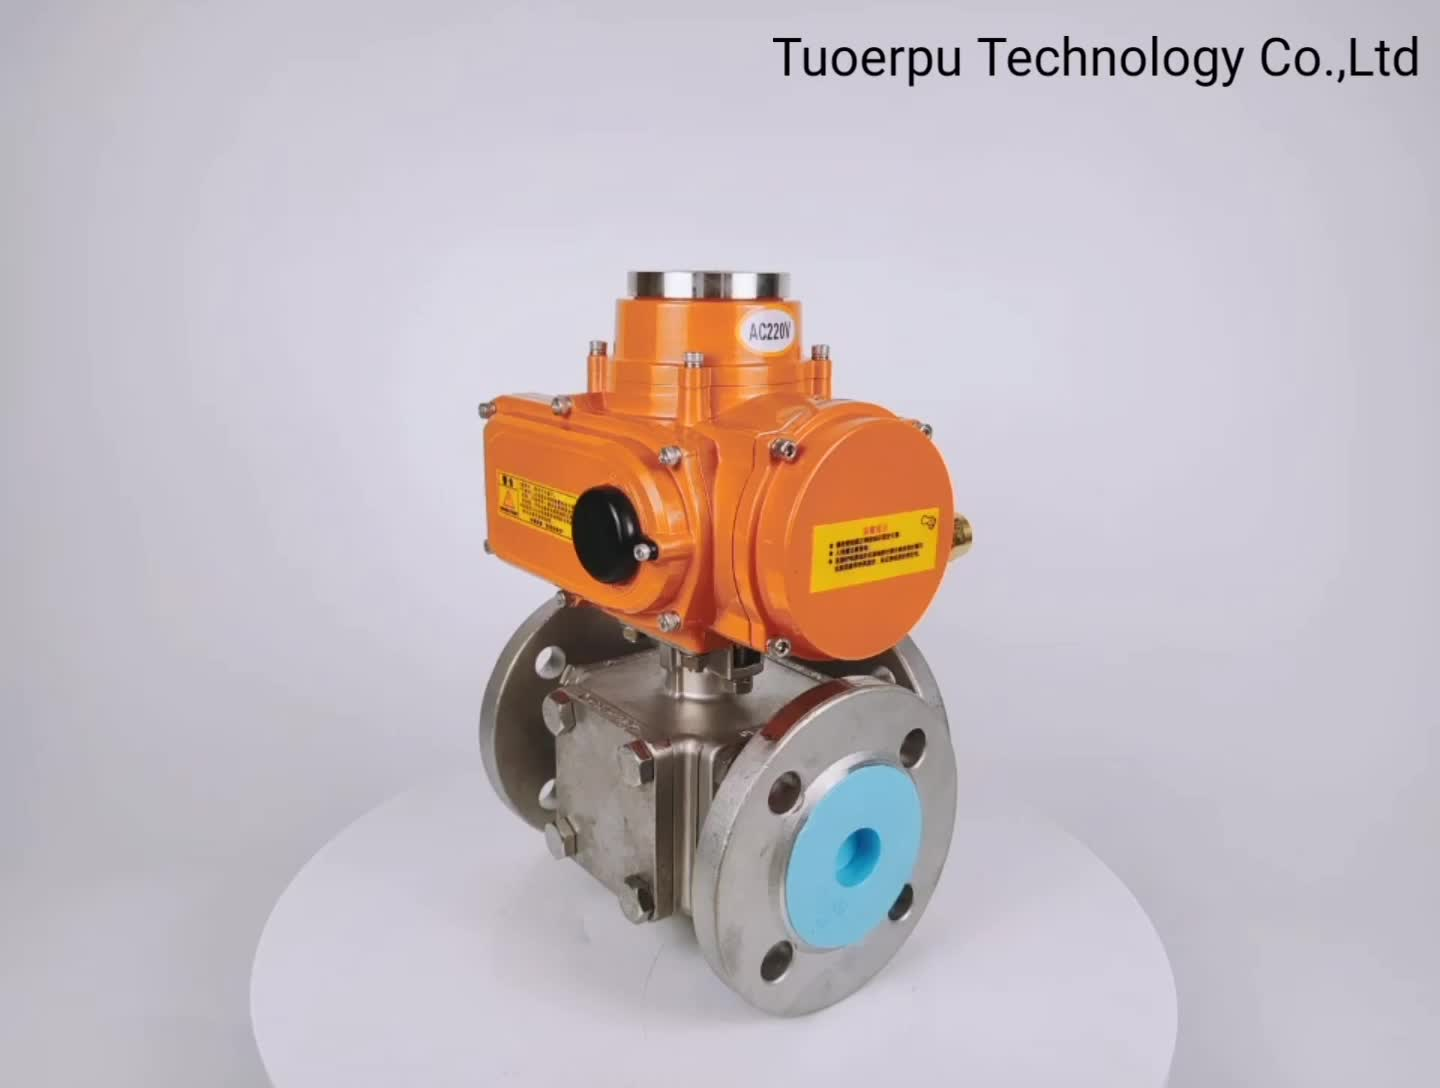 TUOERPU 10 series AC220V/DC24V orange electric actuator plus DN40 three-way ball valve